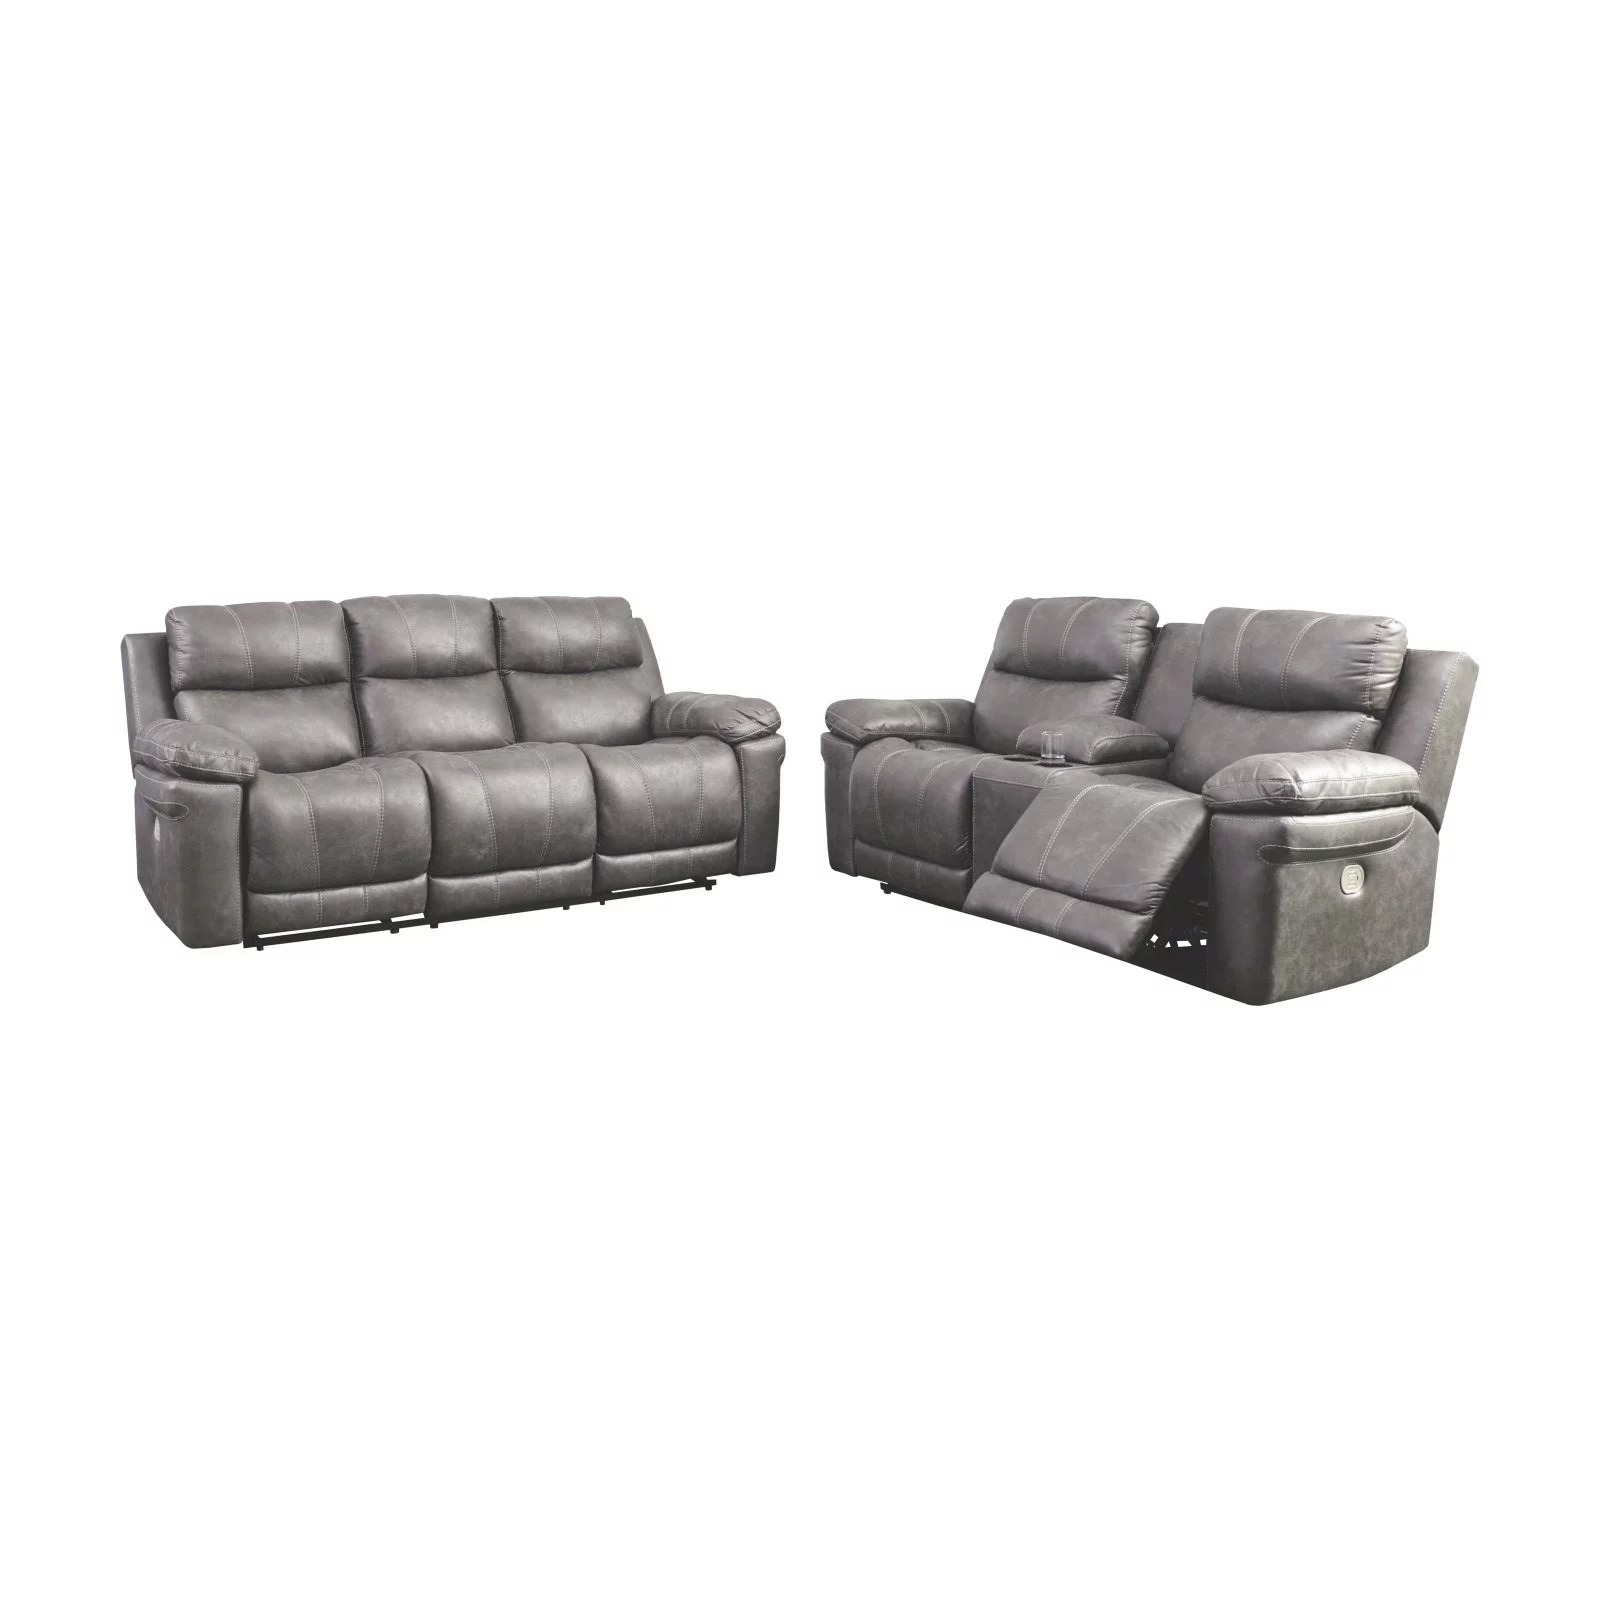 signature design by ashley erlangen power reclining sofa with adjustable headrest